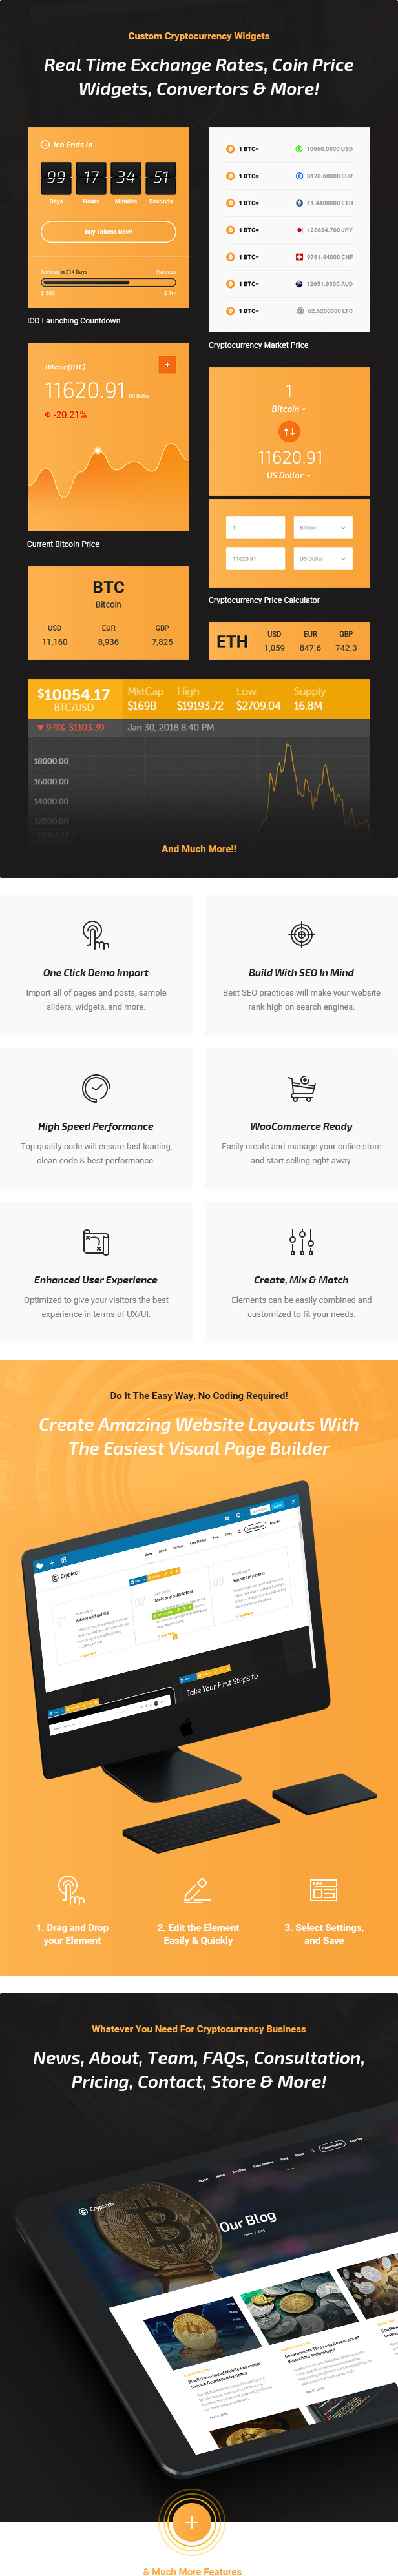 Cryptech - Investments, Consulting, ICO and Cryptocurrency WordPress Theme - 6